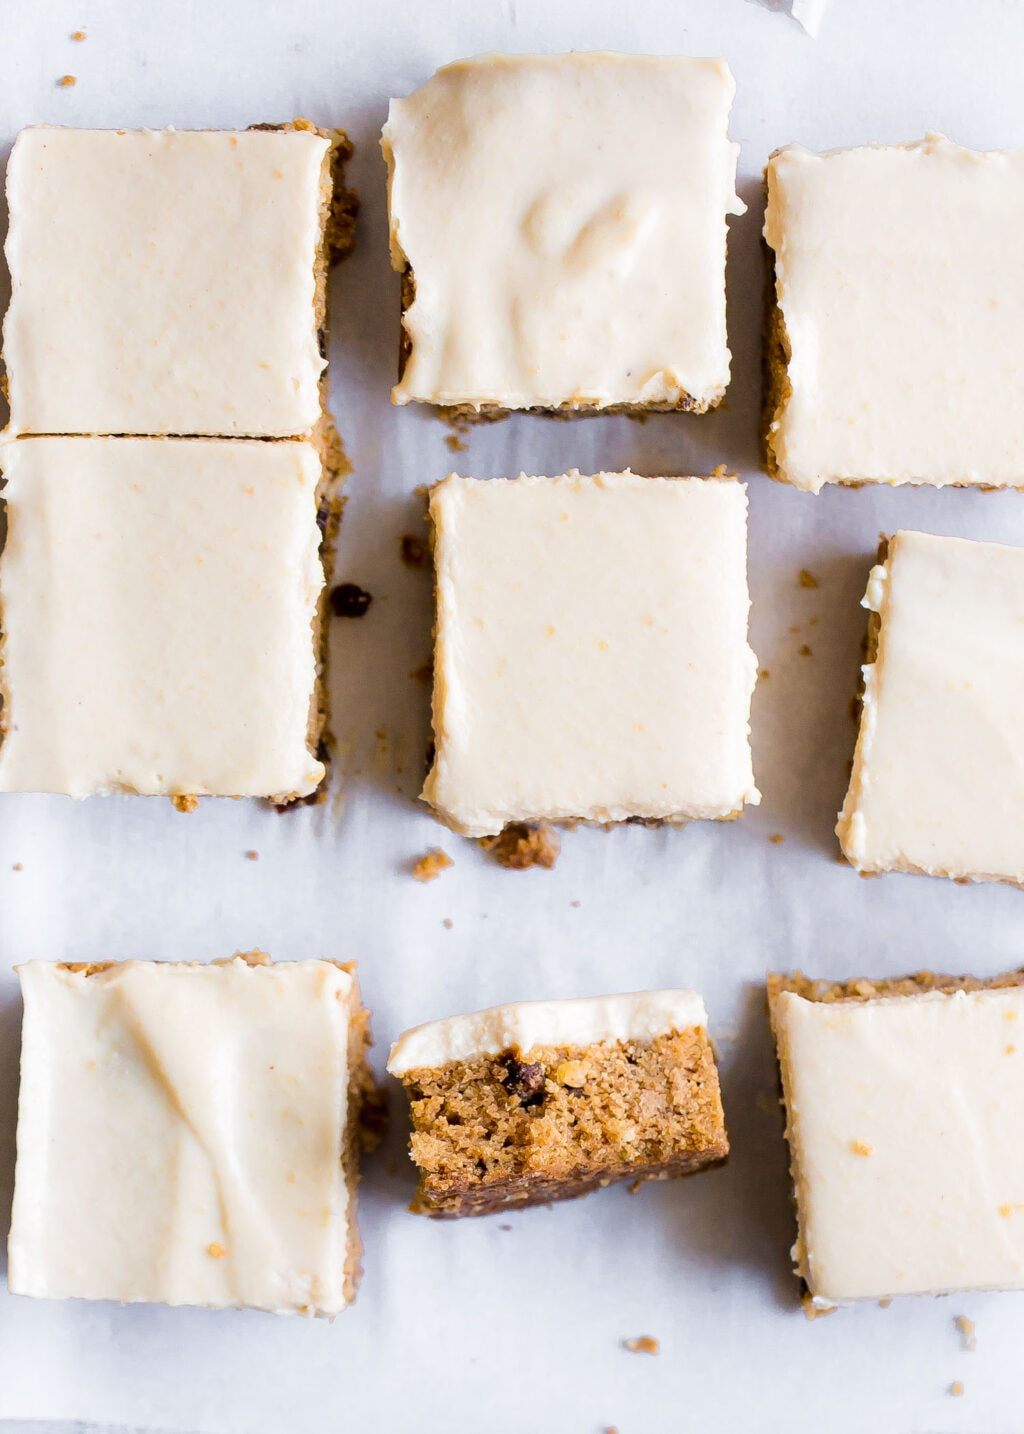 One carrot cake bar facing up, the rest are facing down on a white background.